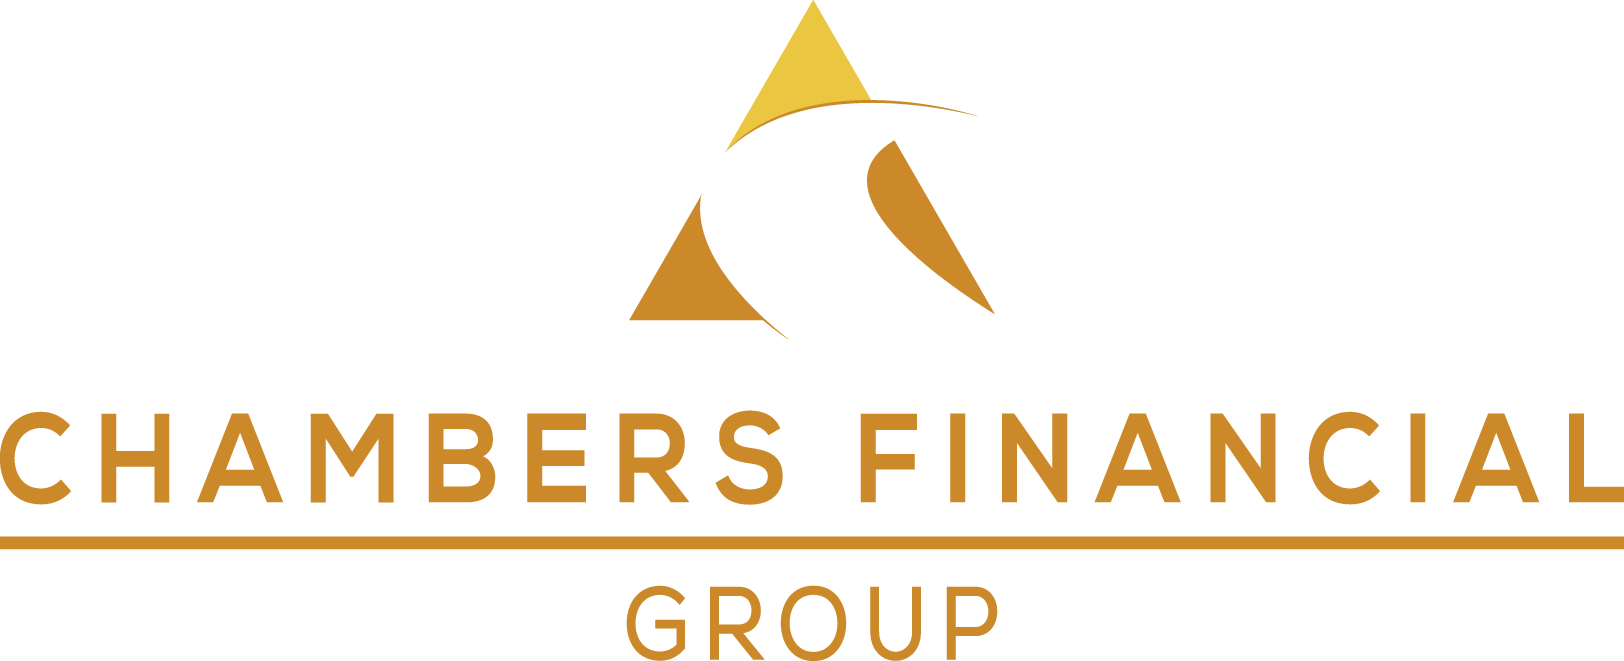 Chambers Financial Group - Clearwater, FL